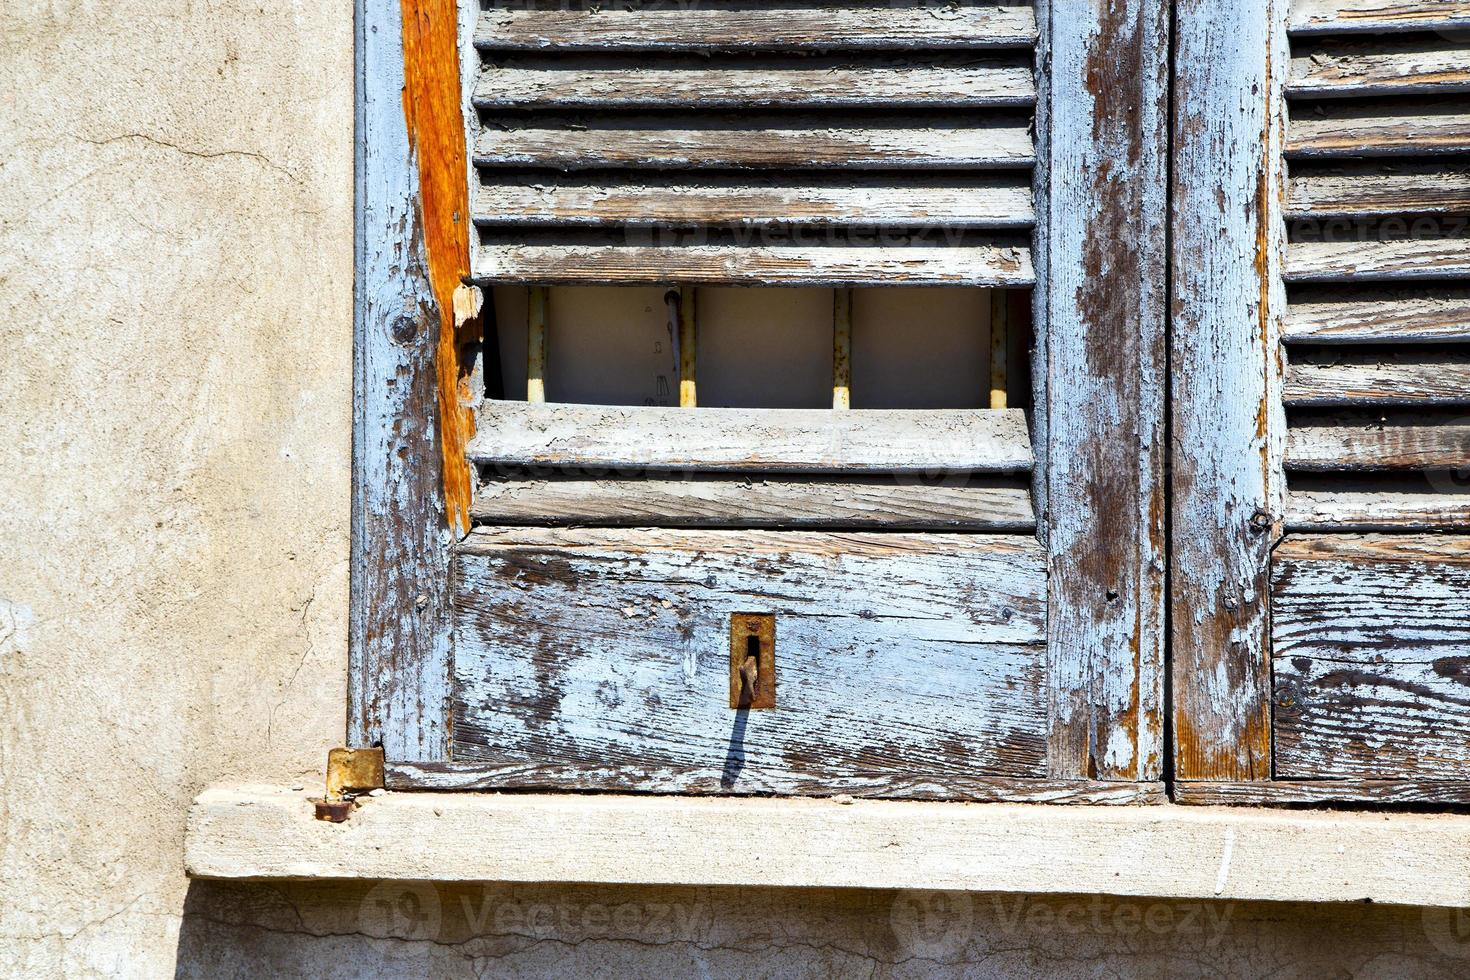 window  lonate  abstract      wood venetian blind in the concre photo